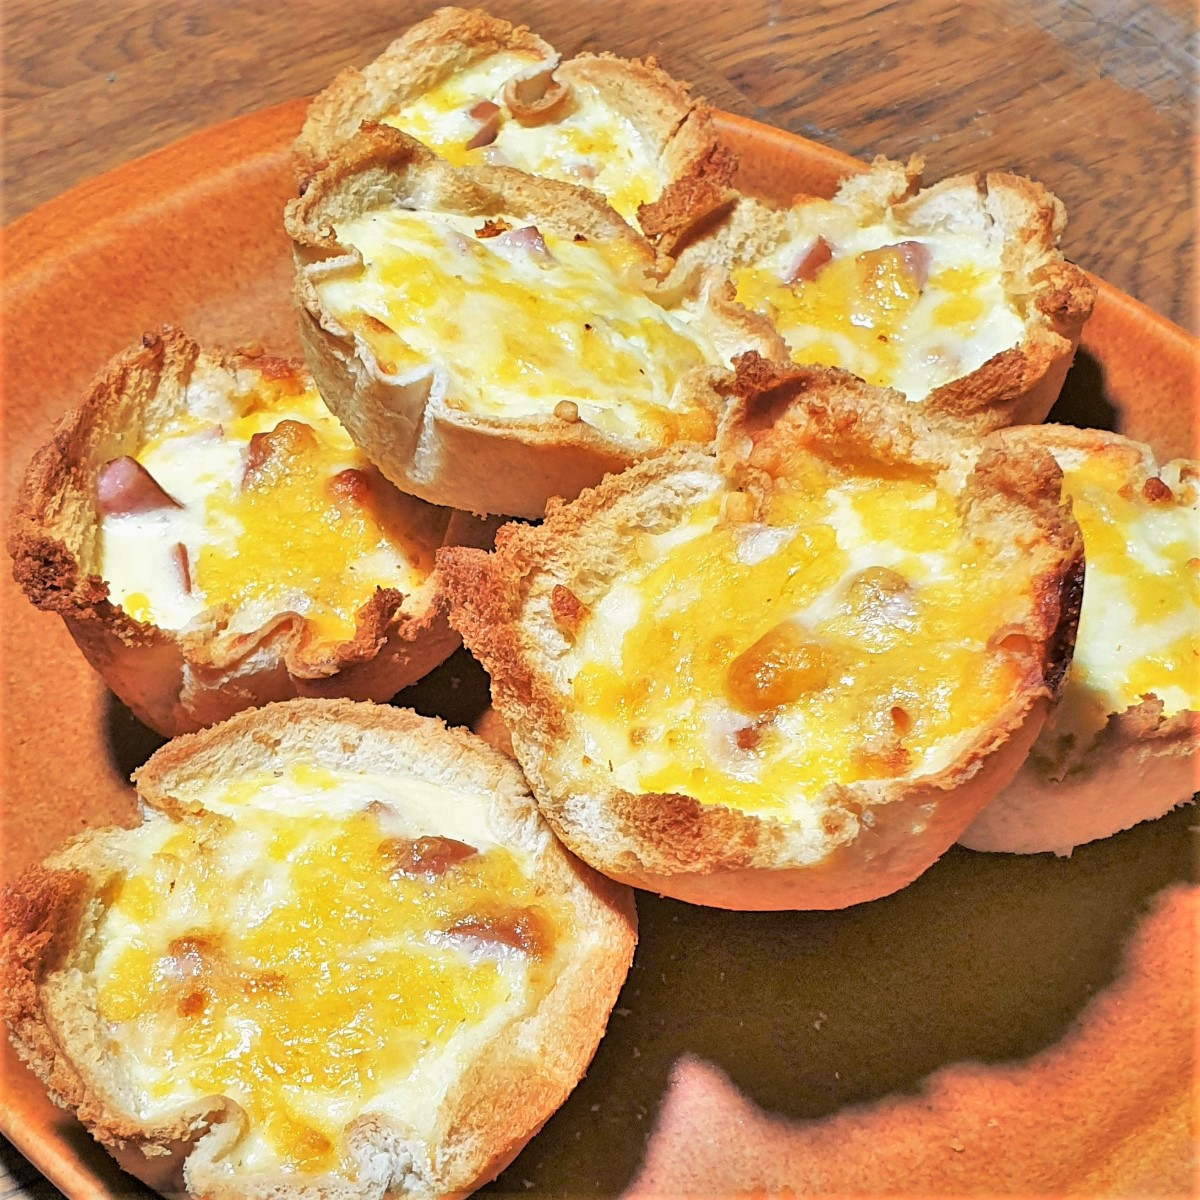 A plate of breadcups filled with egg and chopped sausage.